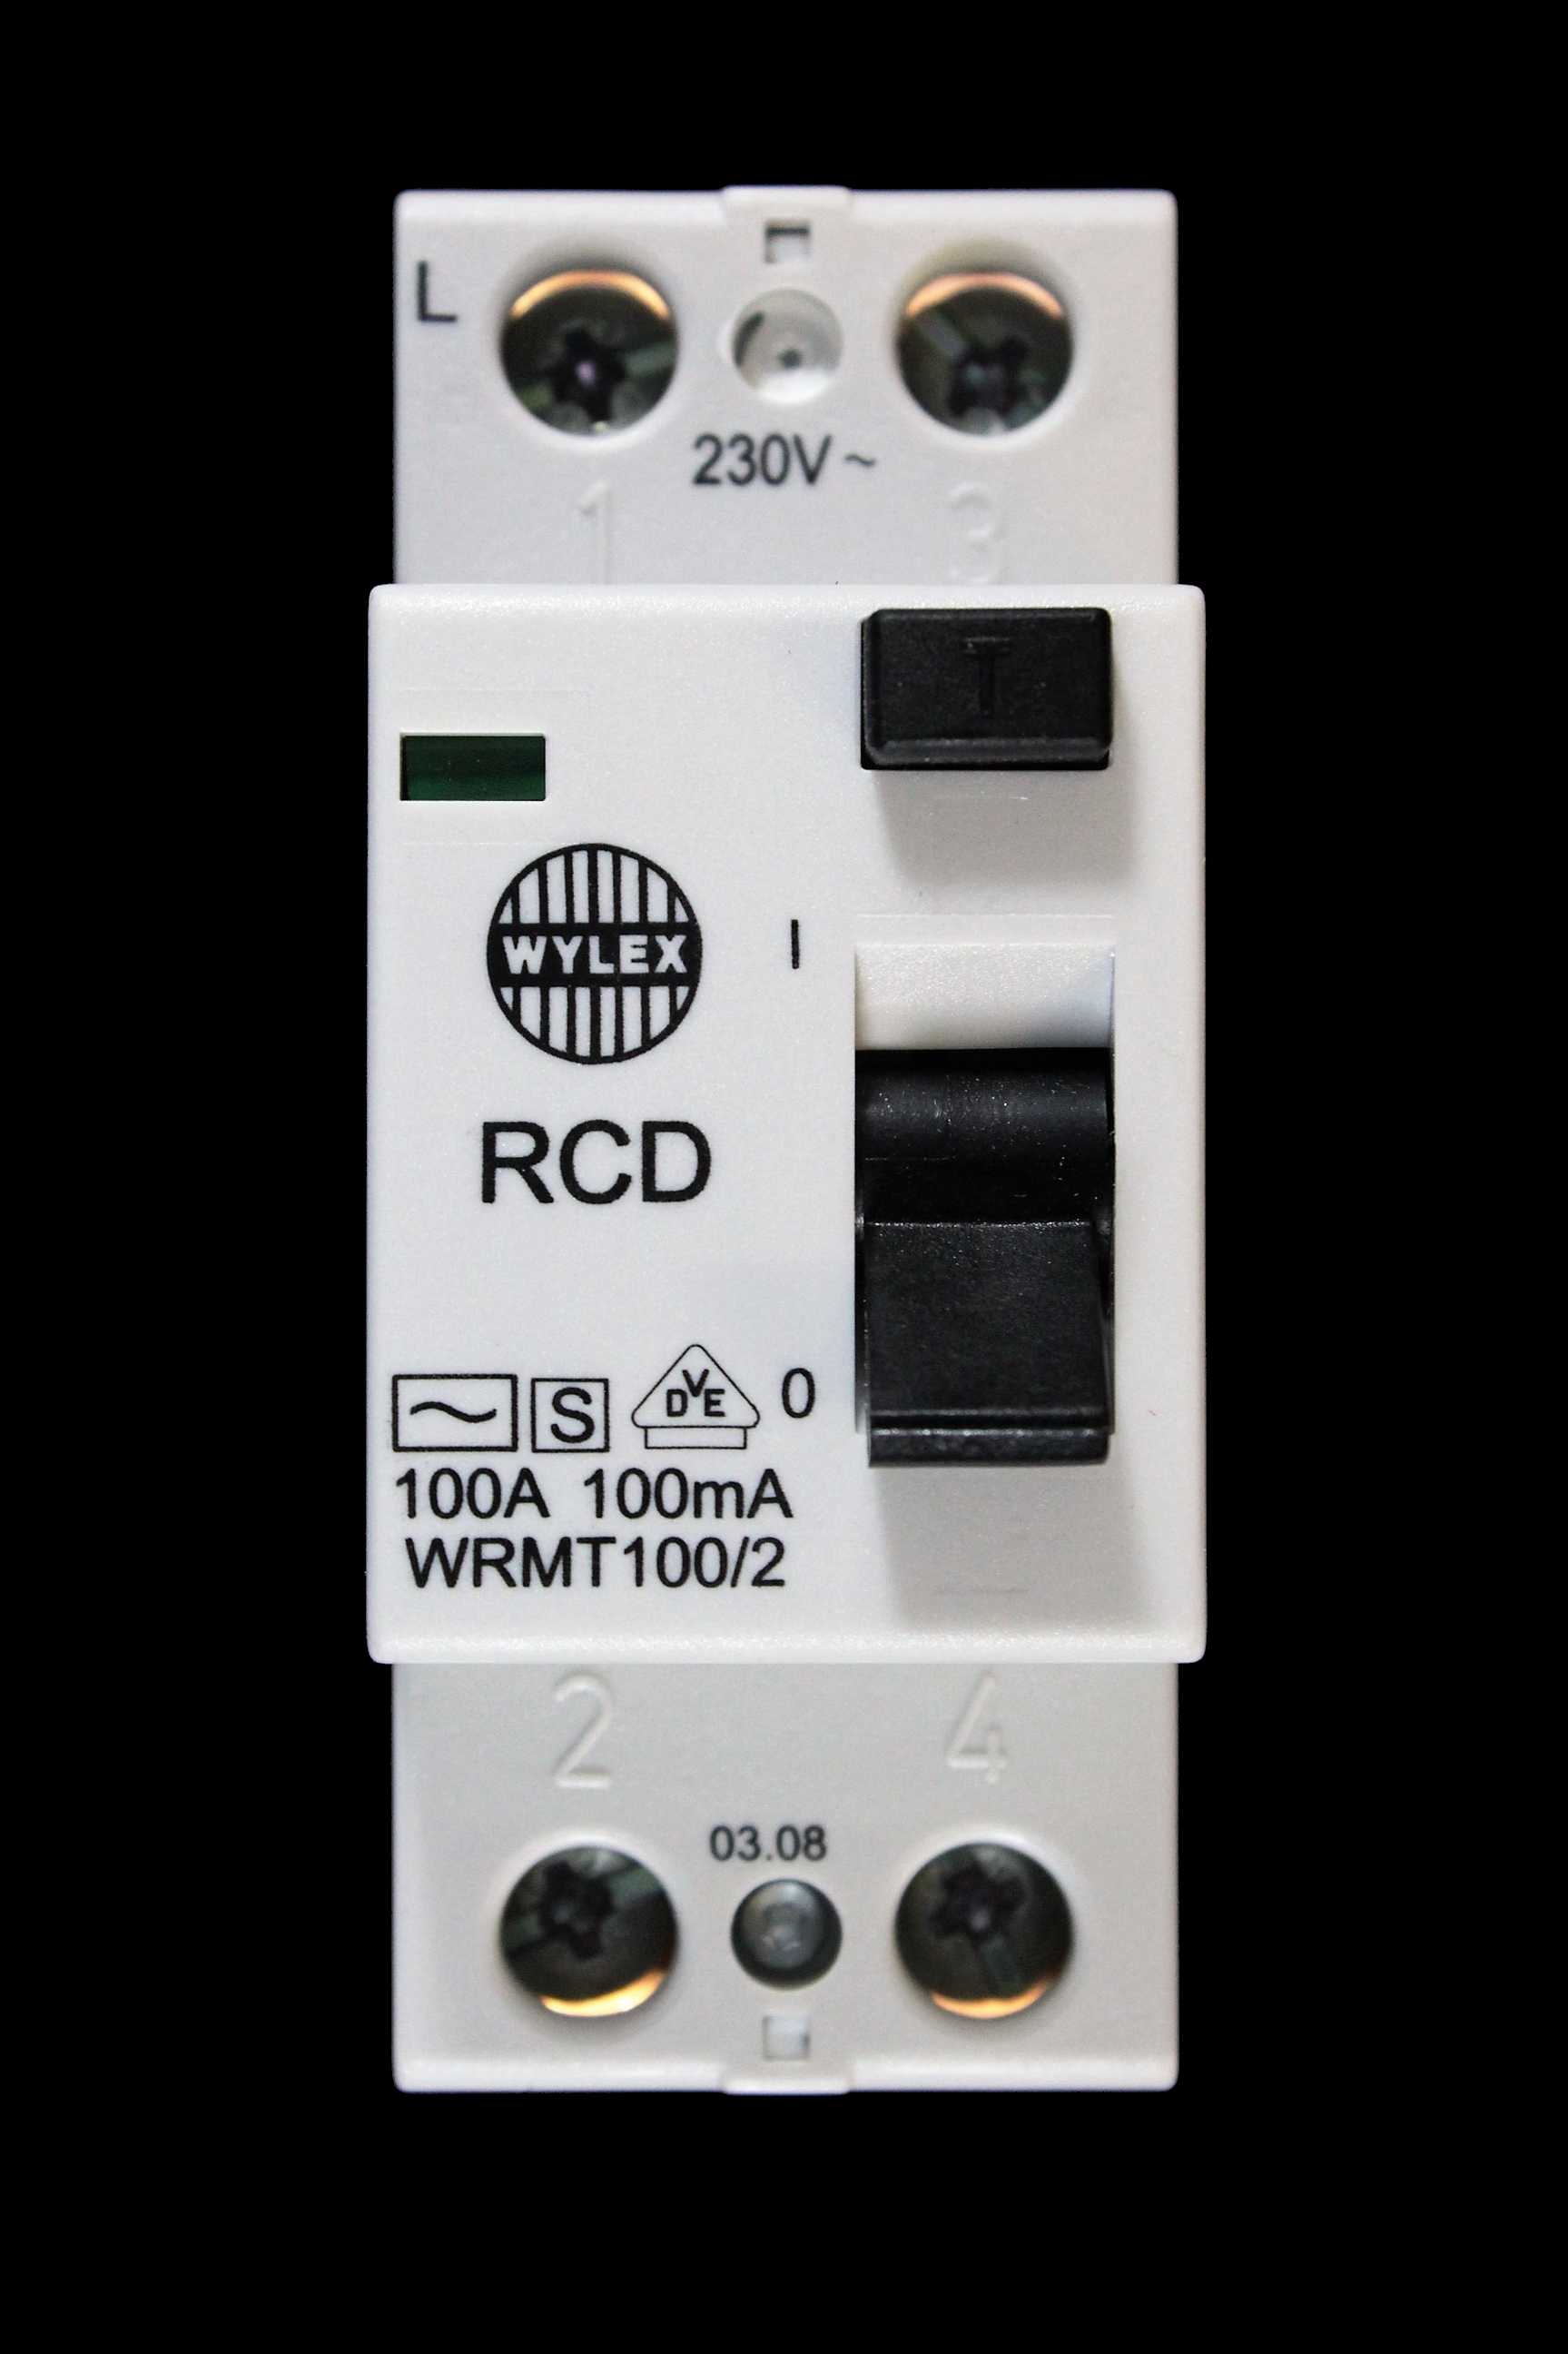 WYLEX 100 AMP 100mA DOUBLE POLE TIME DELAY RCD WRMT100/2